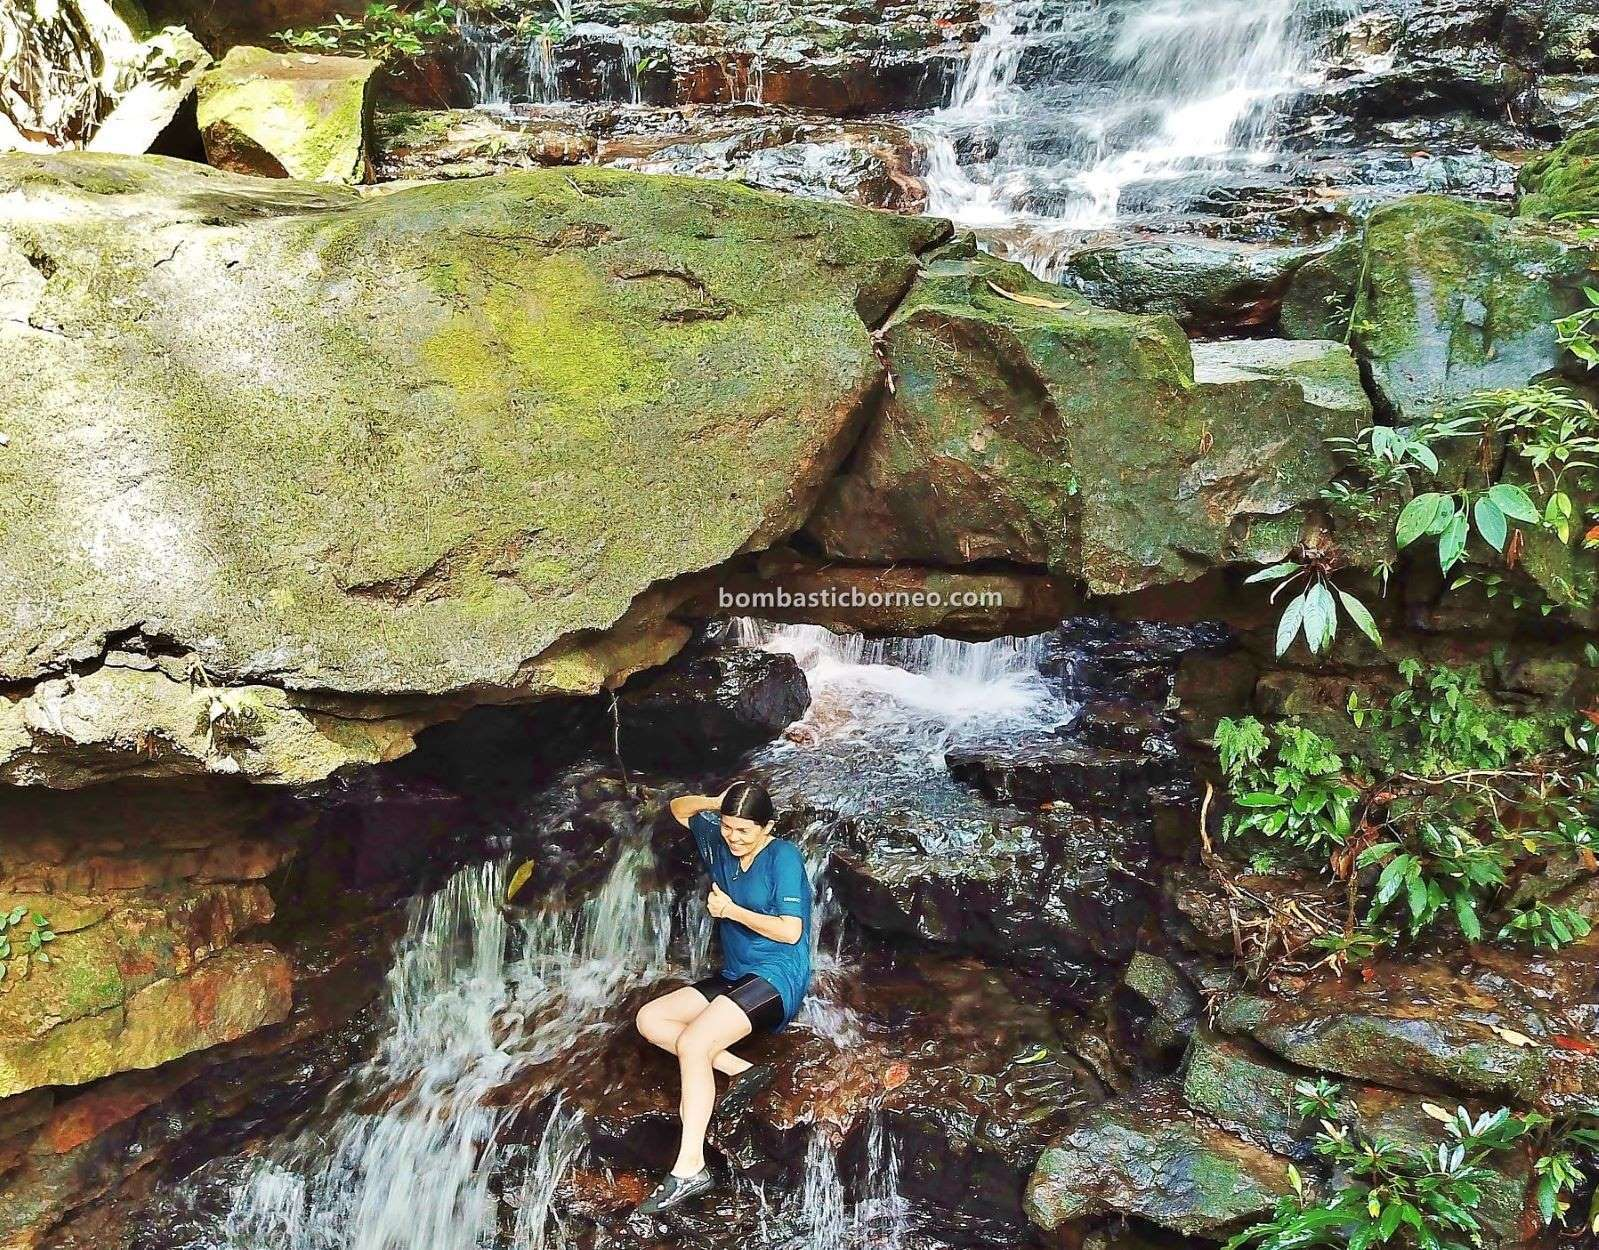 Air Terjun Satow, Kampung Bobak, alam, hiking, exploration, Bau, Singai, Kuching, Malaysia, Tourism, tourist attraction, Borneo, 探索婆罗洲游踪, 马来西亚砂拉越, 古晋石隆门旅游景点